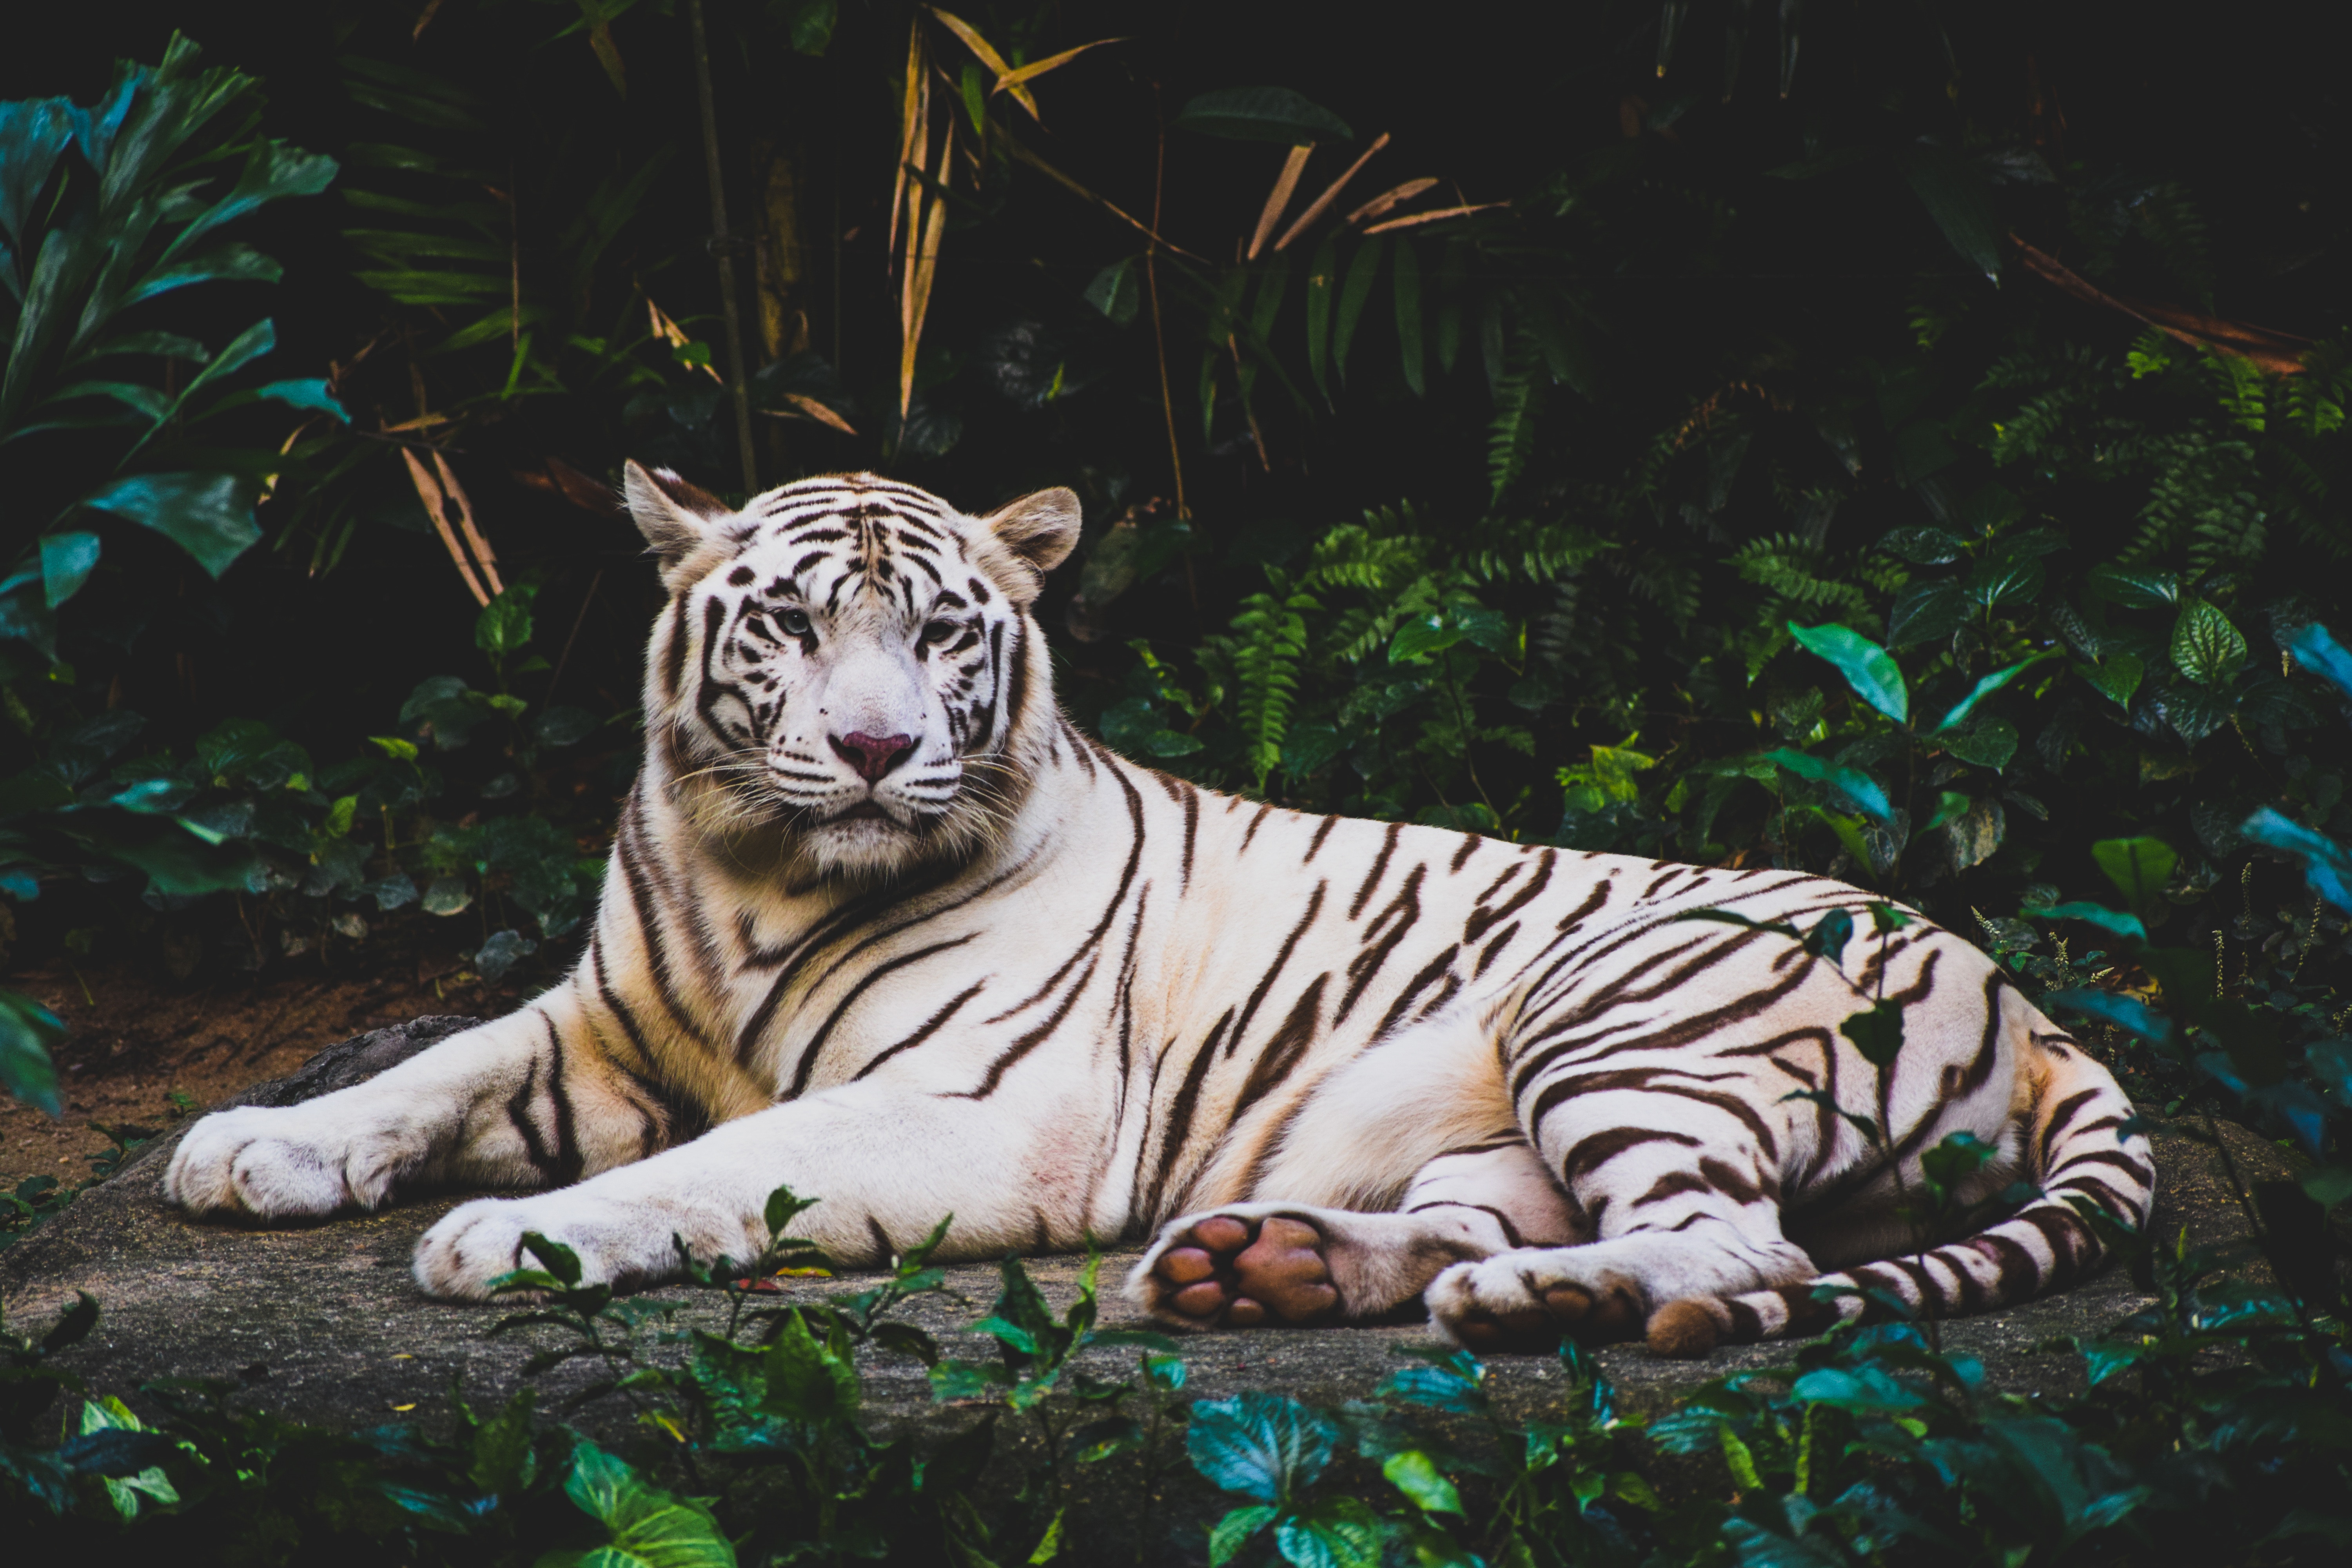 70932 download wallpaper Animals, Lies, Predator, Tiger screensavers and pictures for free